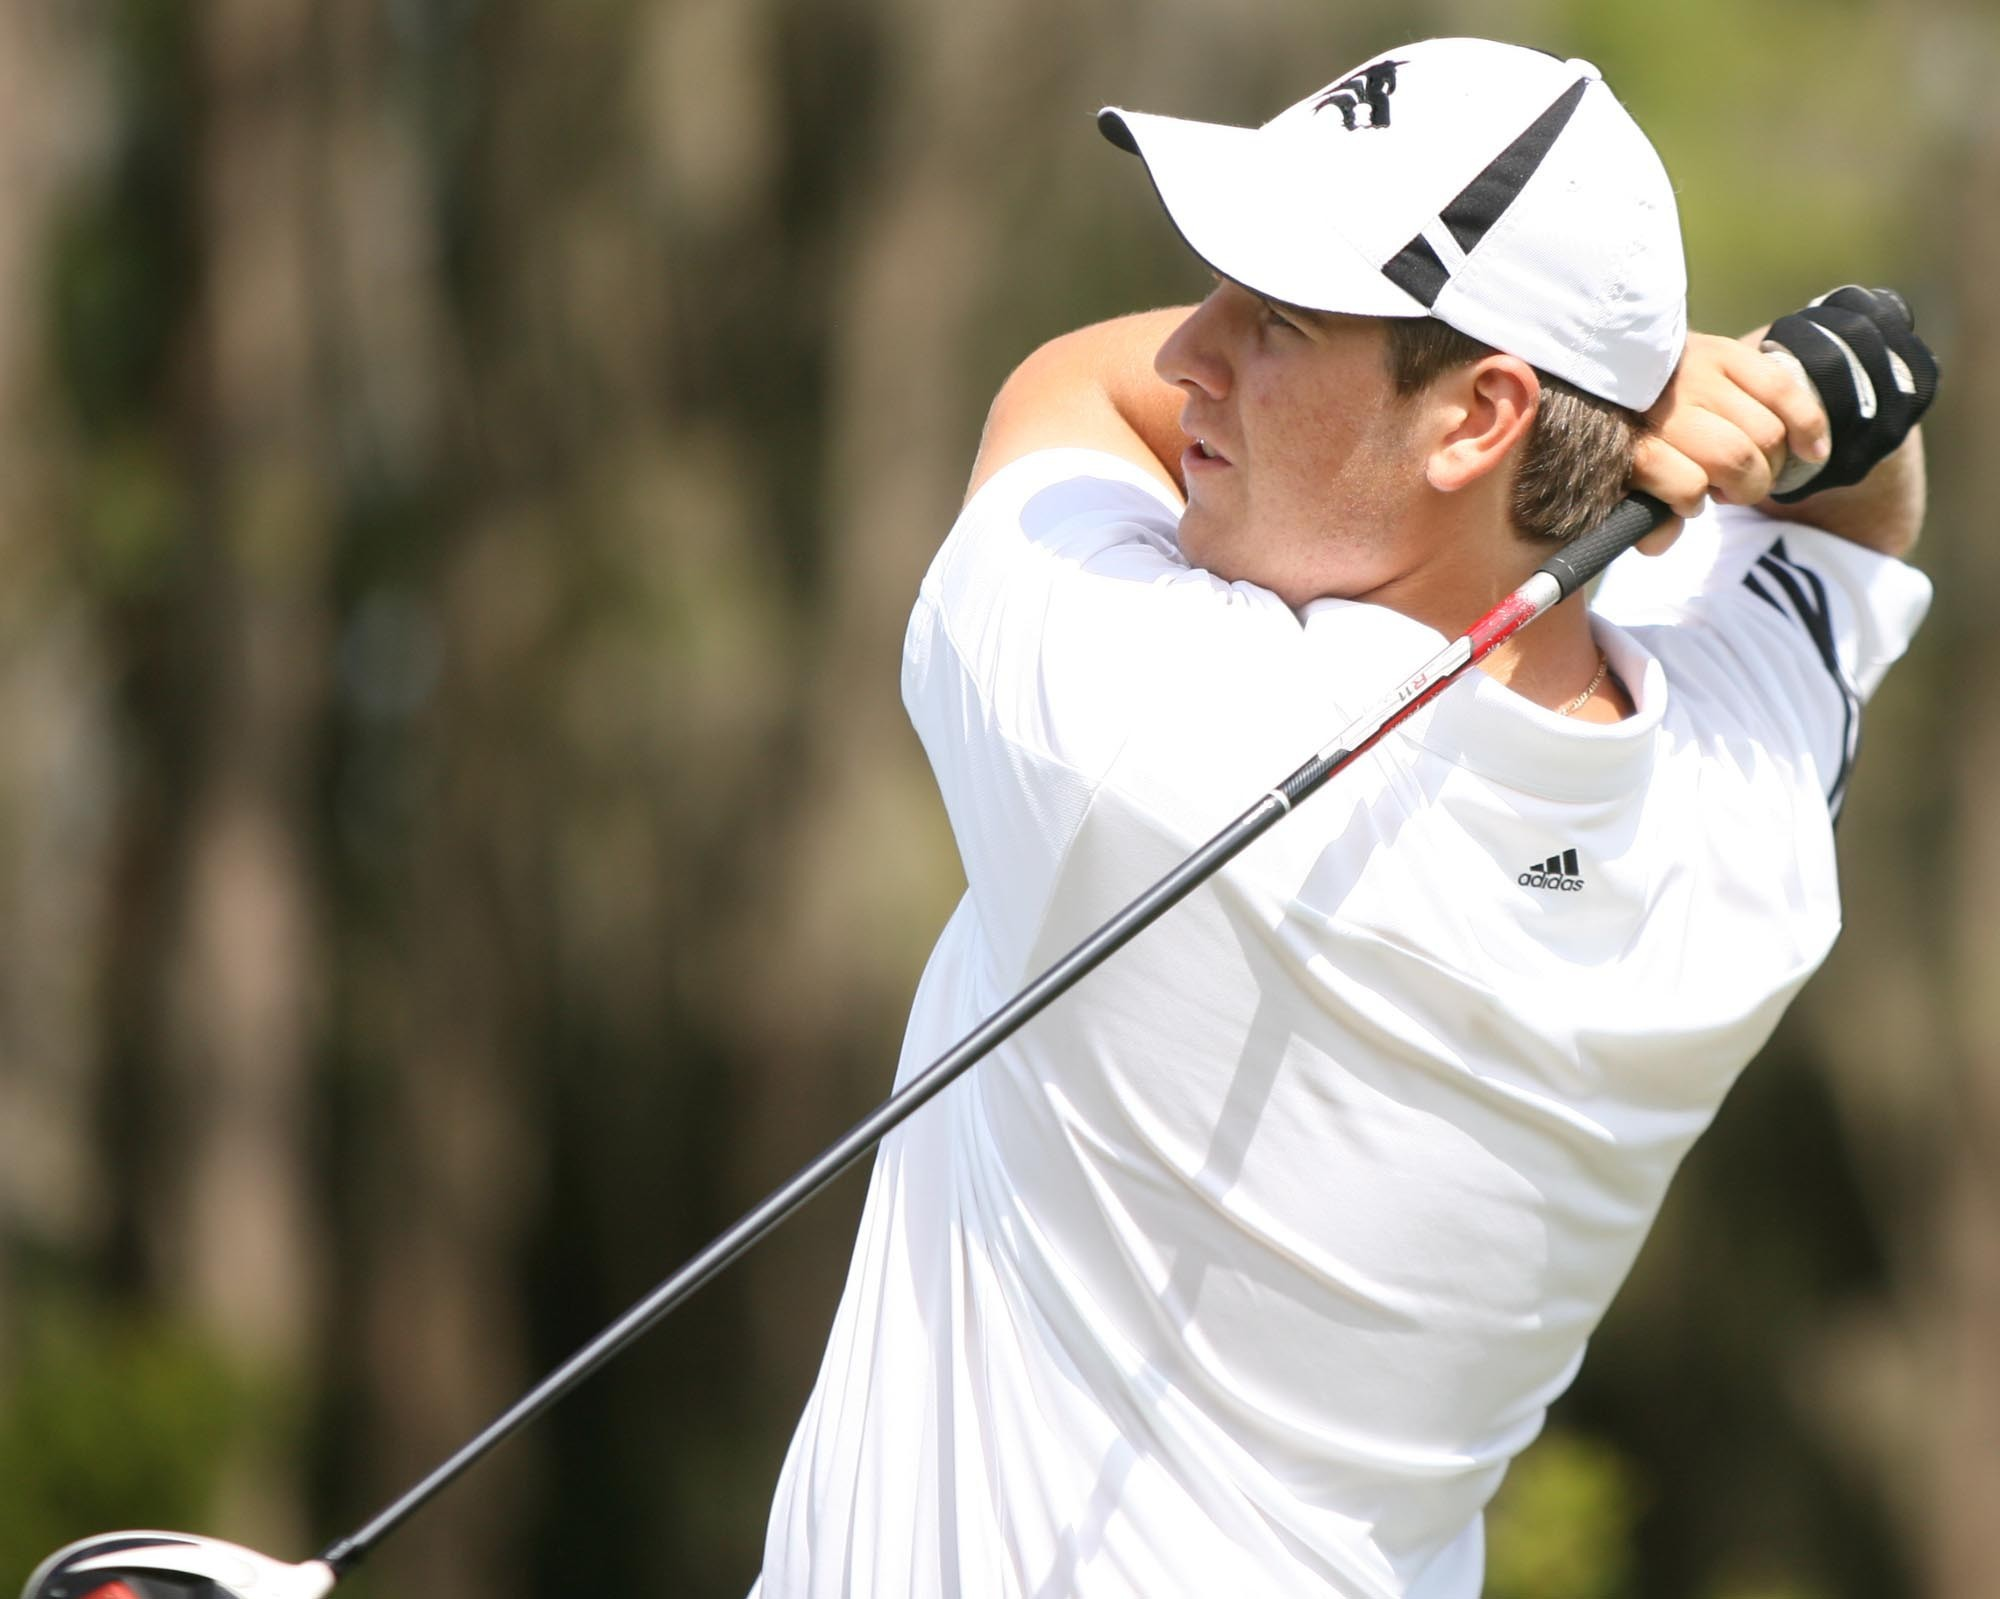 Timber Creek's Michael Keymont fired an even-par round of 72 to help Timber Creek past West Orange and Boone.